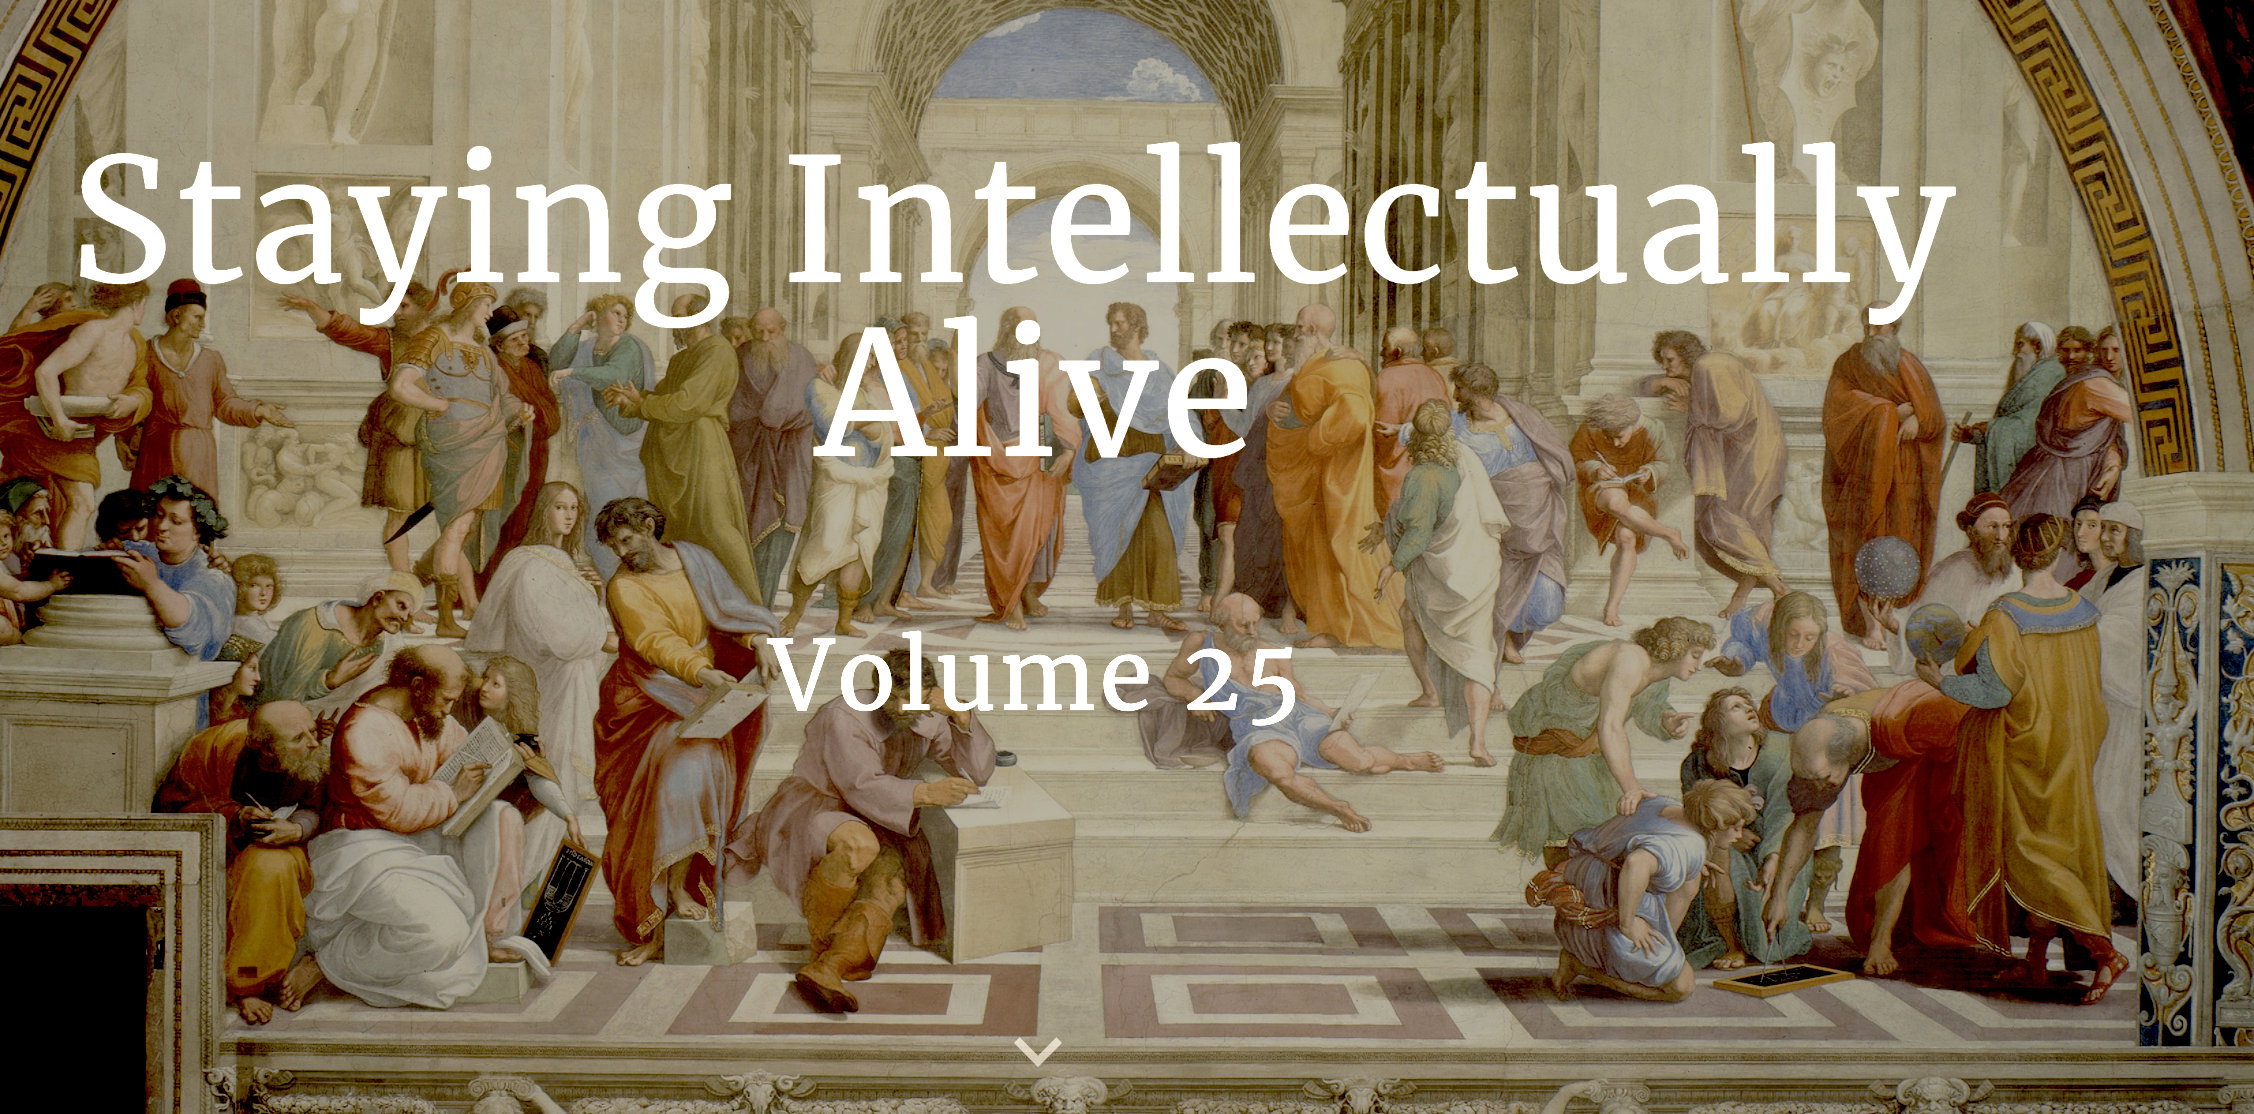 Staying Intellectually Alive